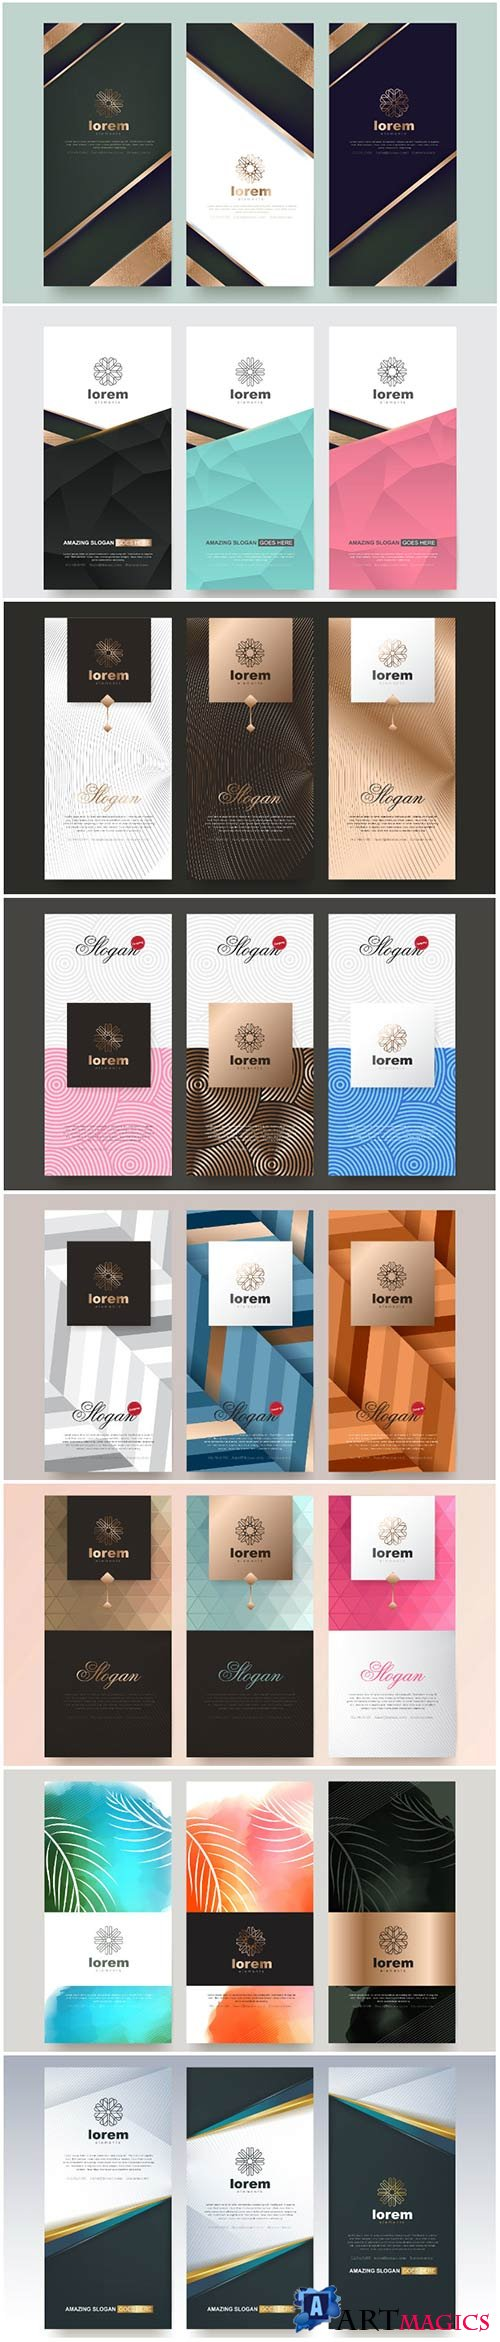 Stylish vector templates for packaging